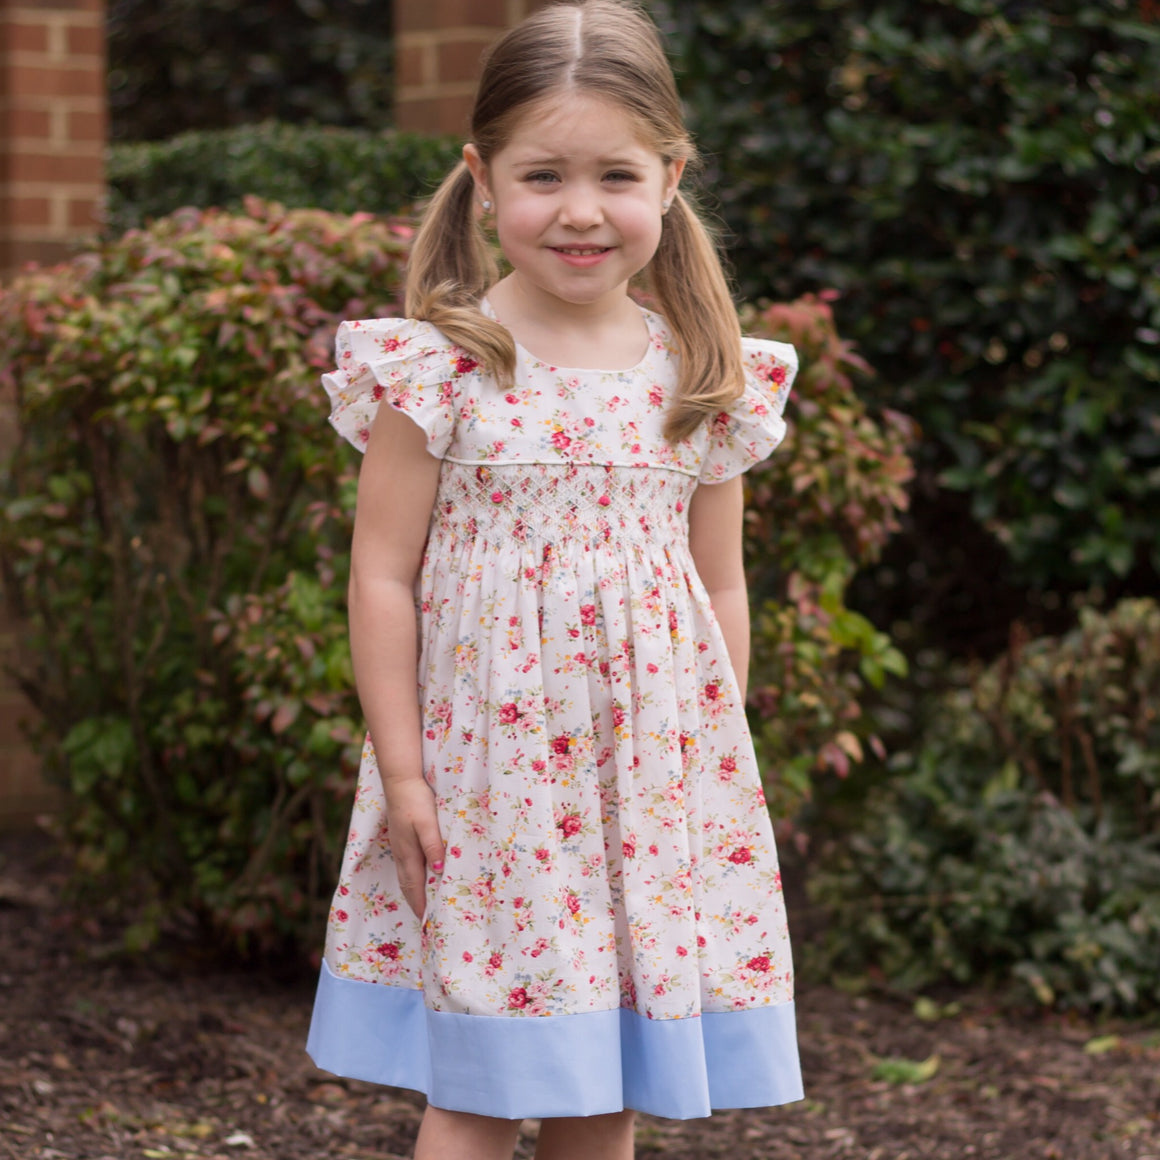 Country Meadows Smocked Floral Dress Girls Easter Dress